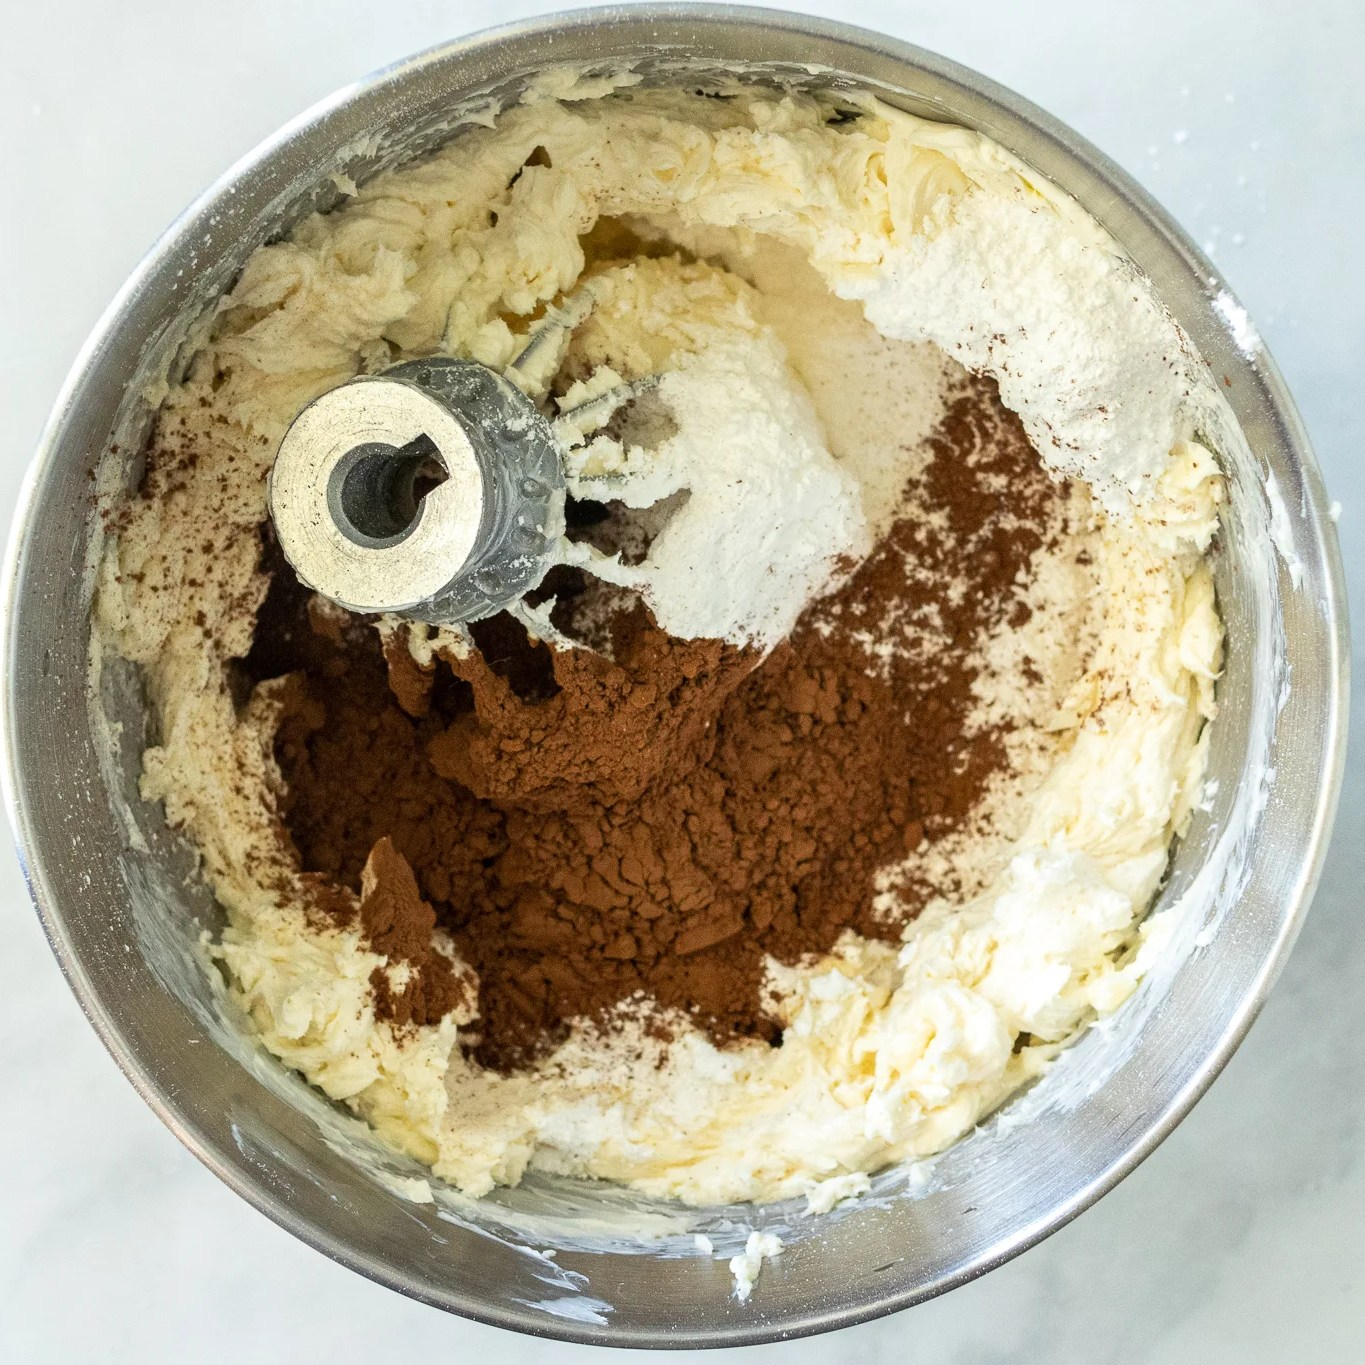 buttercream and cacao powder added to the mixing bowl